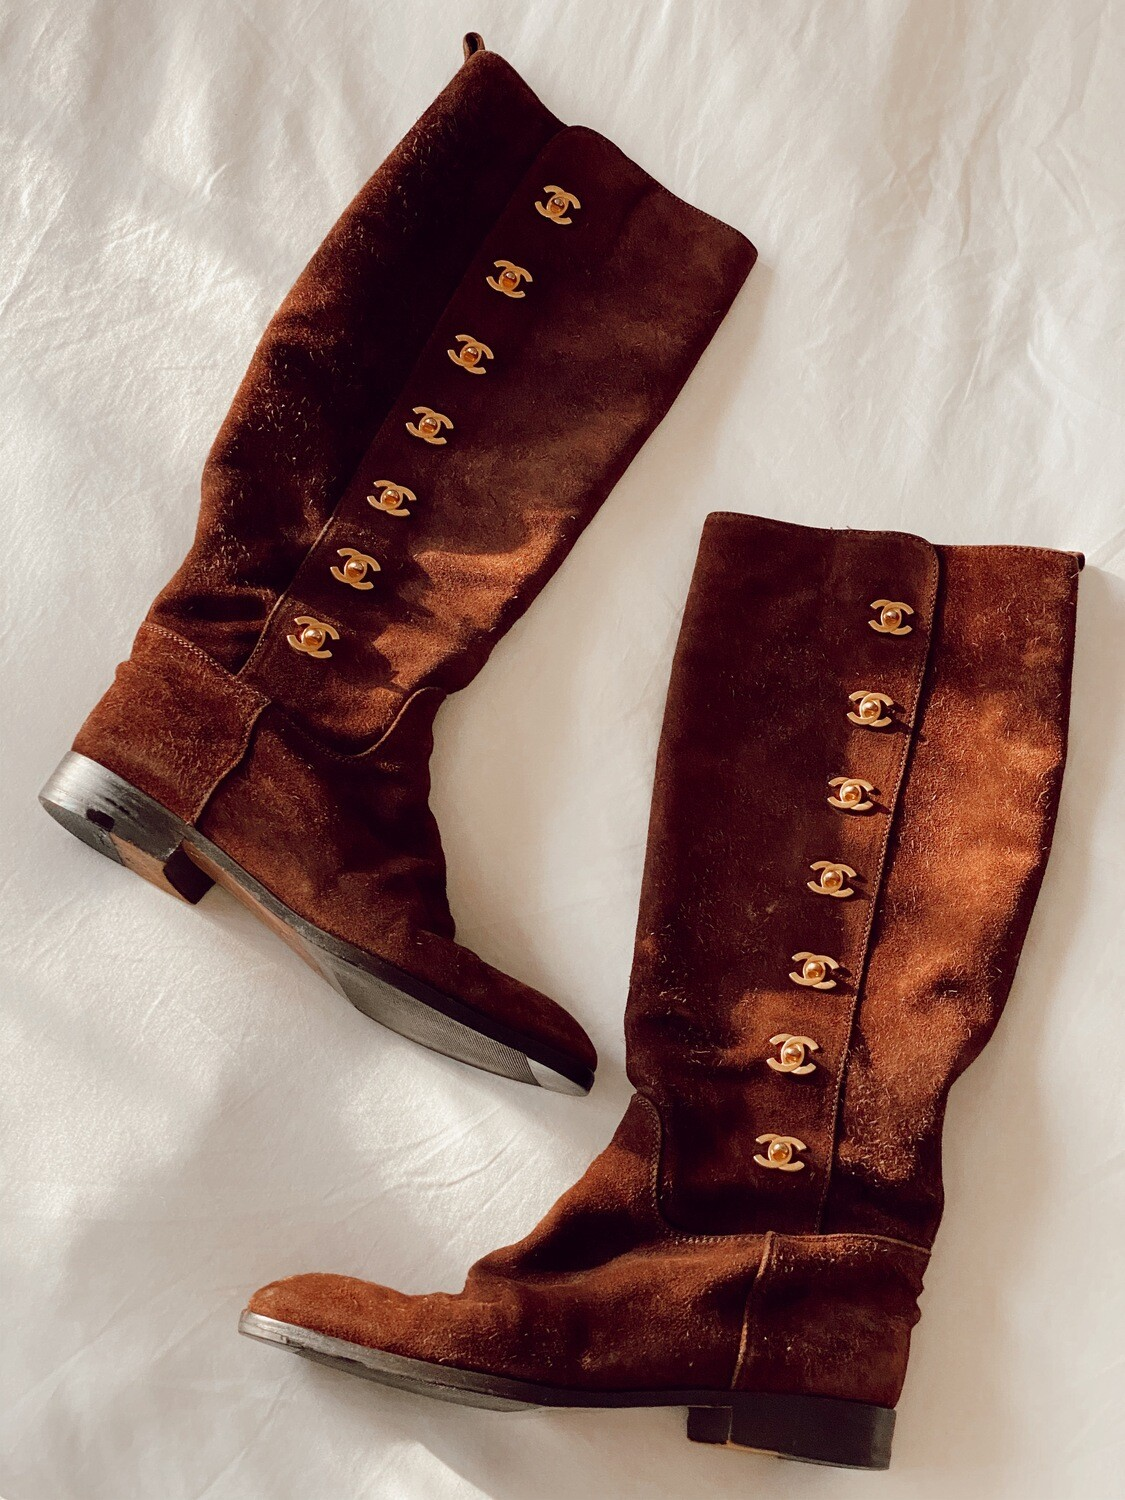 VINTAGE CHANEL CC GOLD TURNLOCK BROWN SUEDE LEATHER RIDING TALL BOOTS 38 / 7 - 7.5